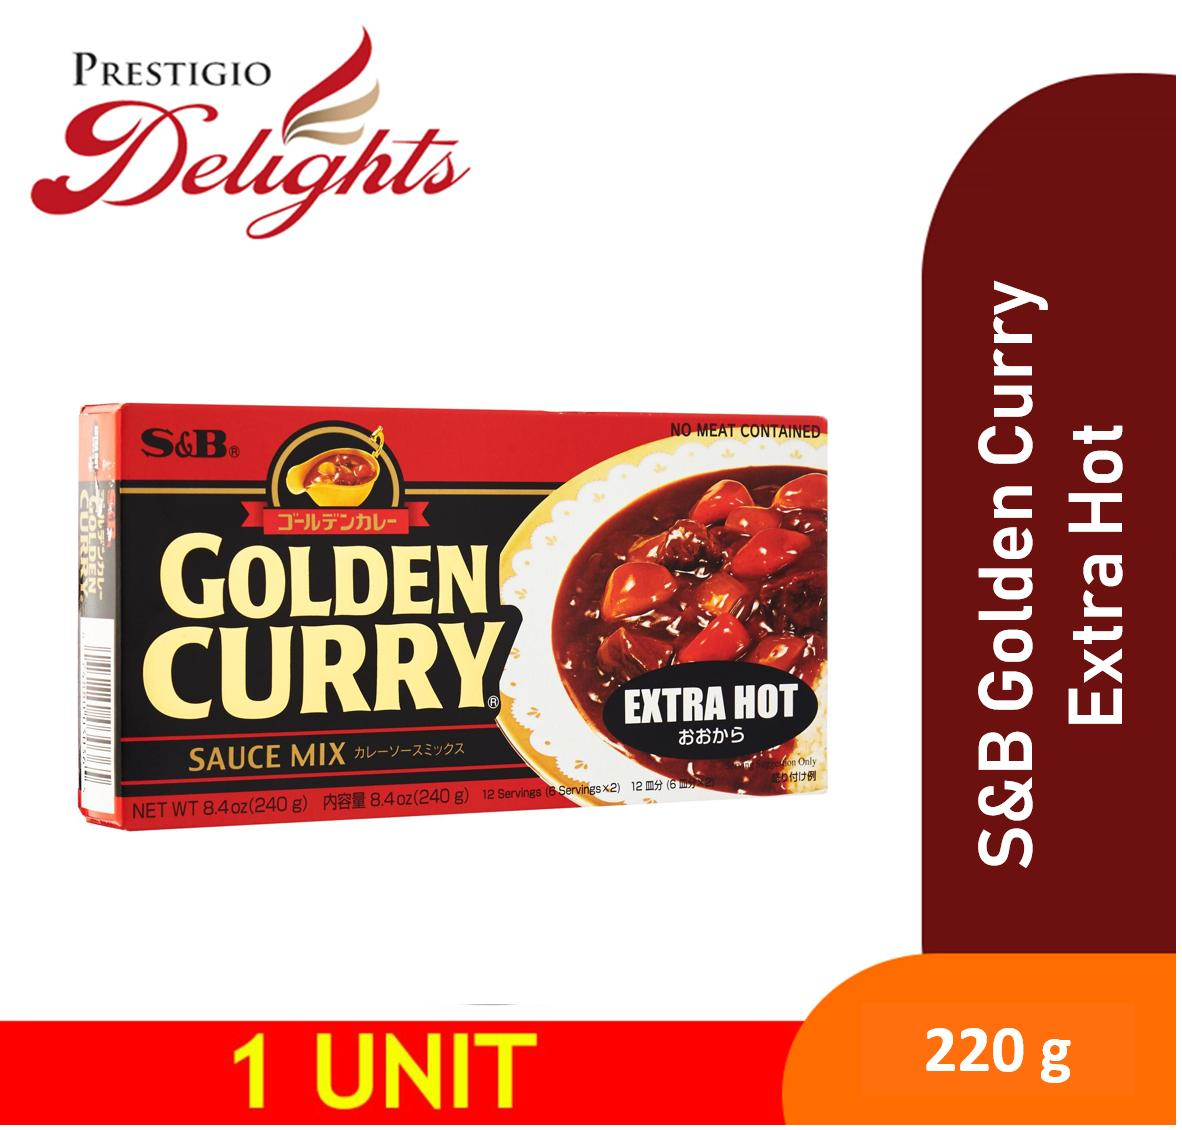 S&b Golden Curry Extra Hot Instant Curry 220g By Prestigio Delights.